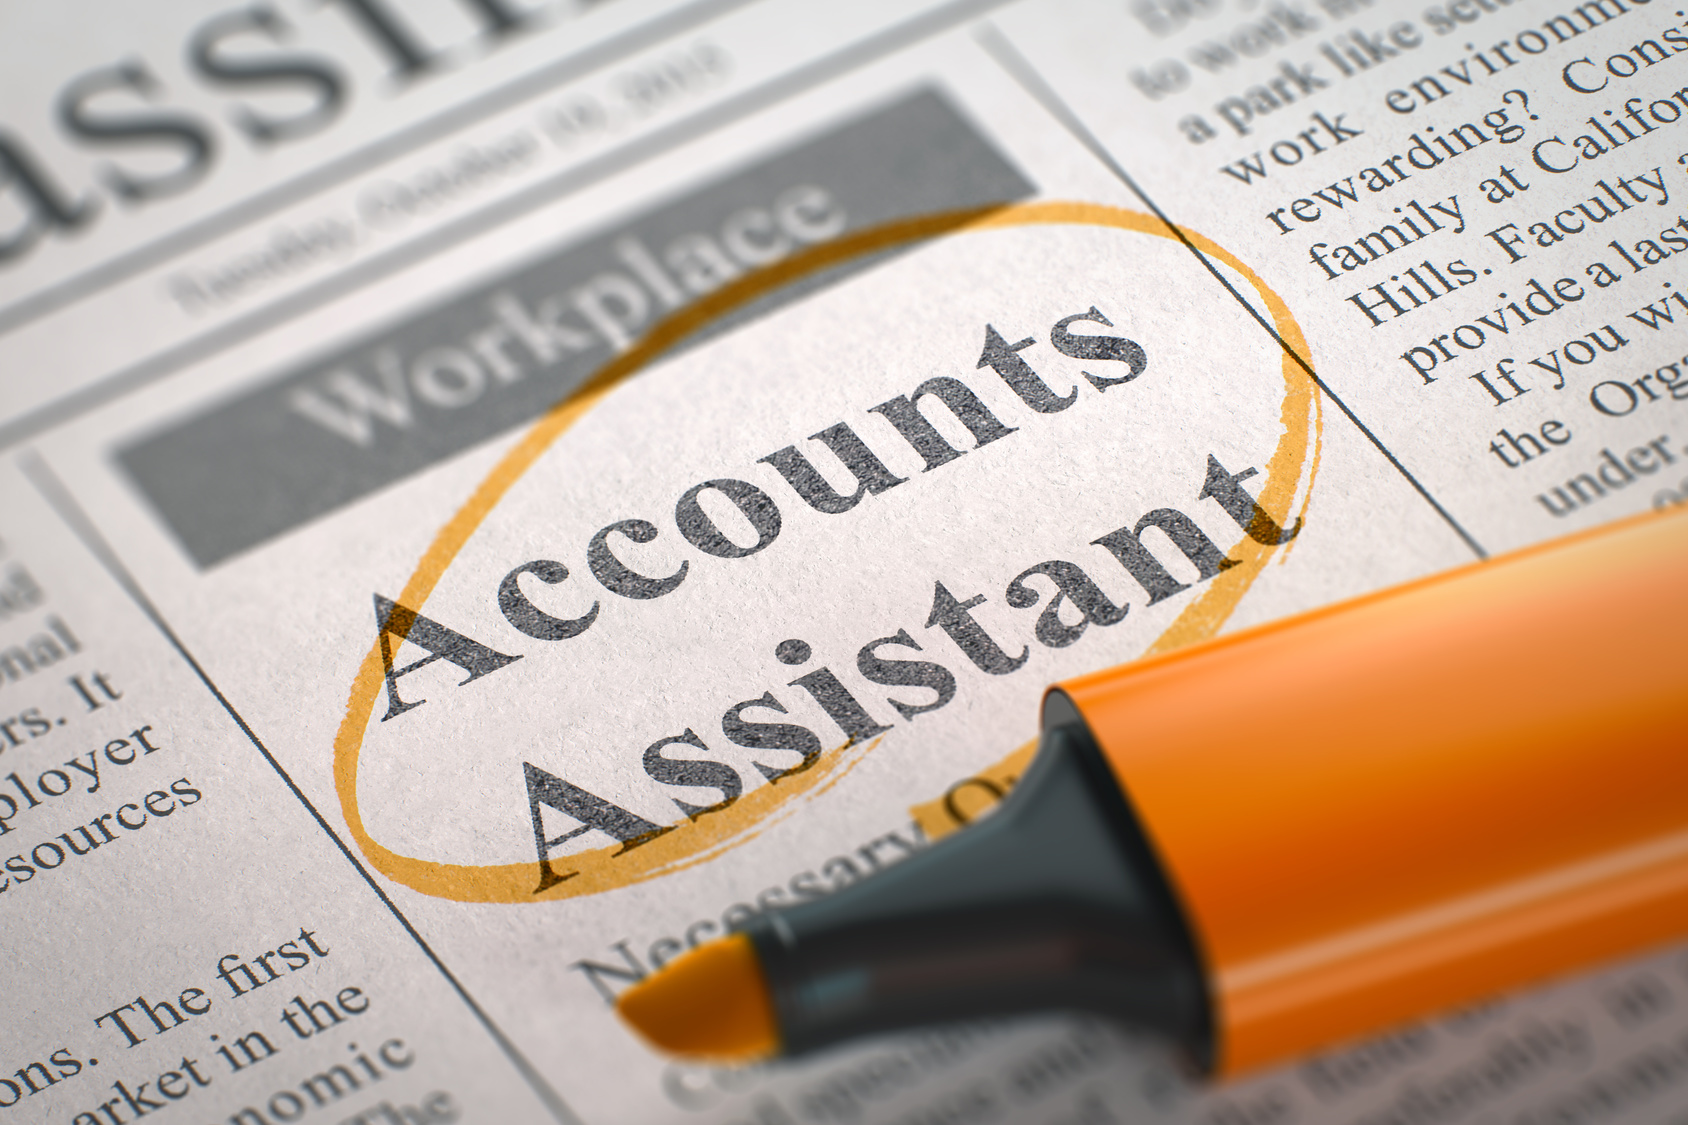 If Youu0027re Looking To Apply For A Range Of Accountancy Jobs, We Can Help Get  Your Cover Letter Ready With Our Accounts Assistant Cover Letter Template.